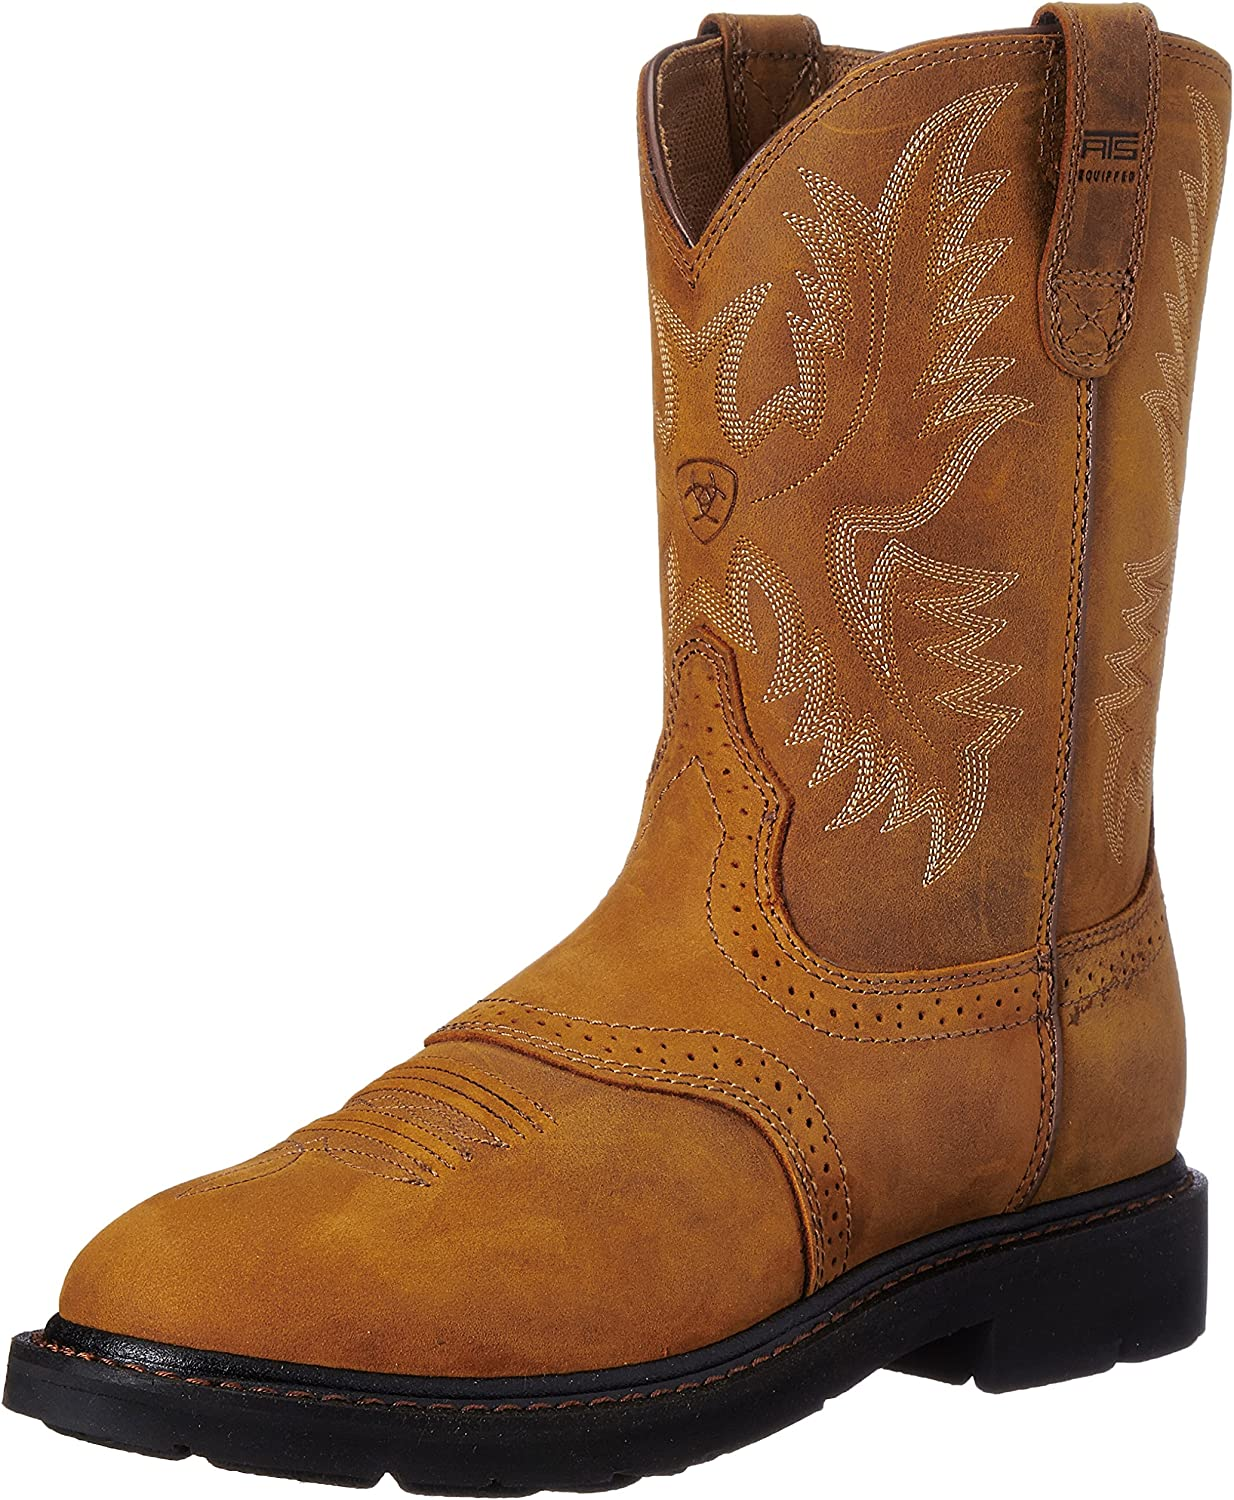 Ariat Men's Sierra Saddle Work Boot, Aged Bark, 12 B US